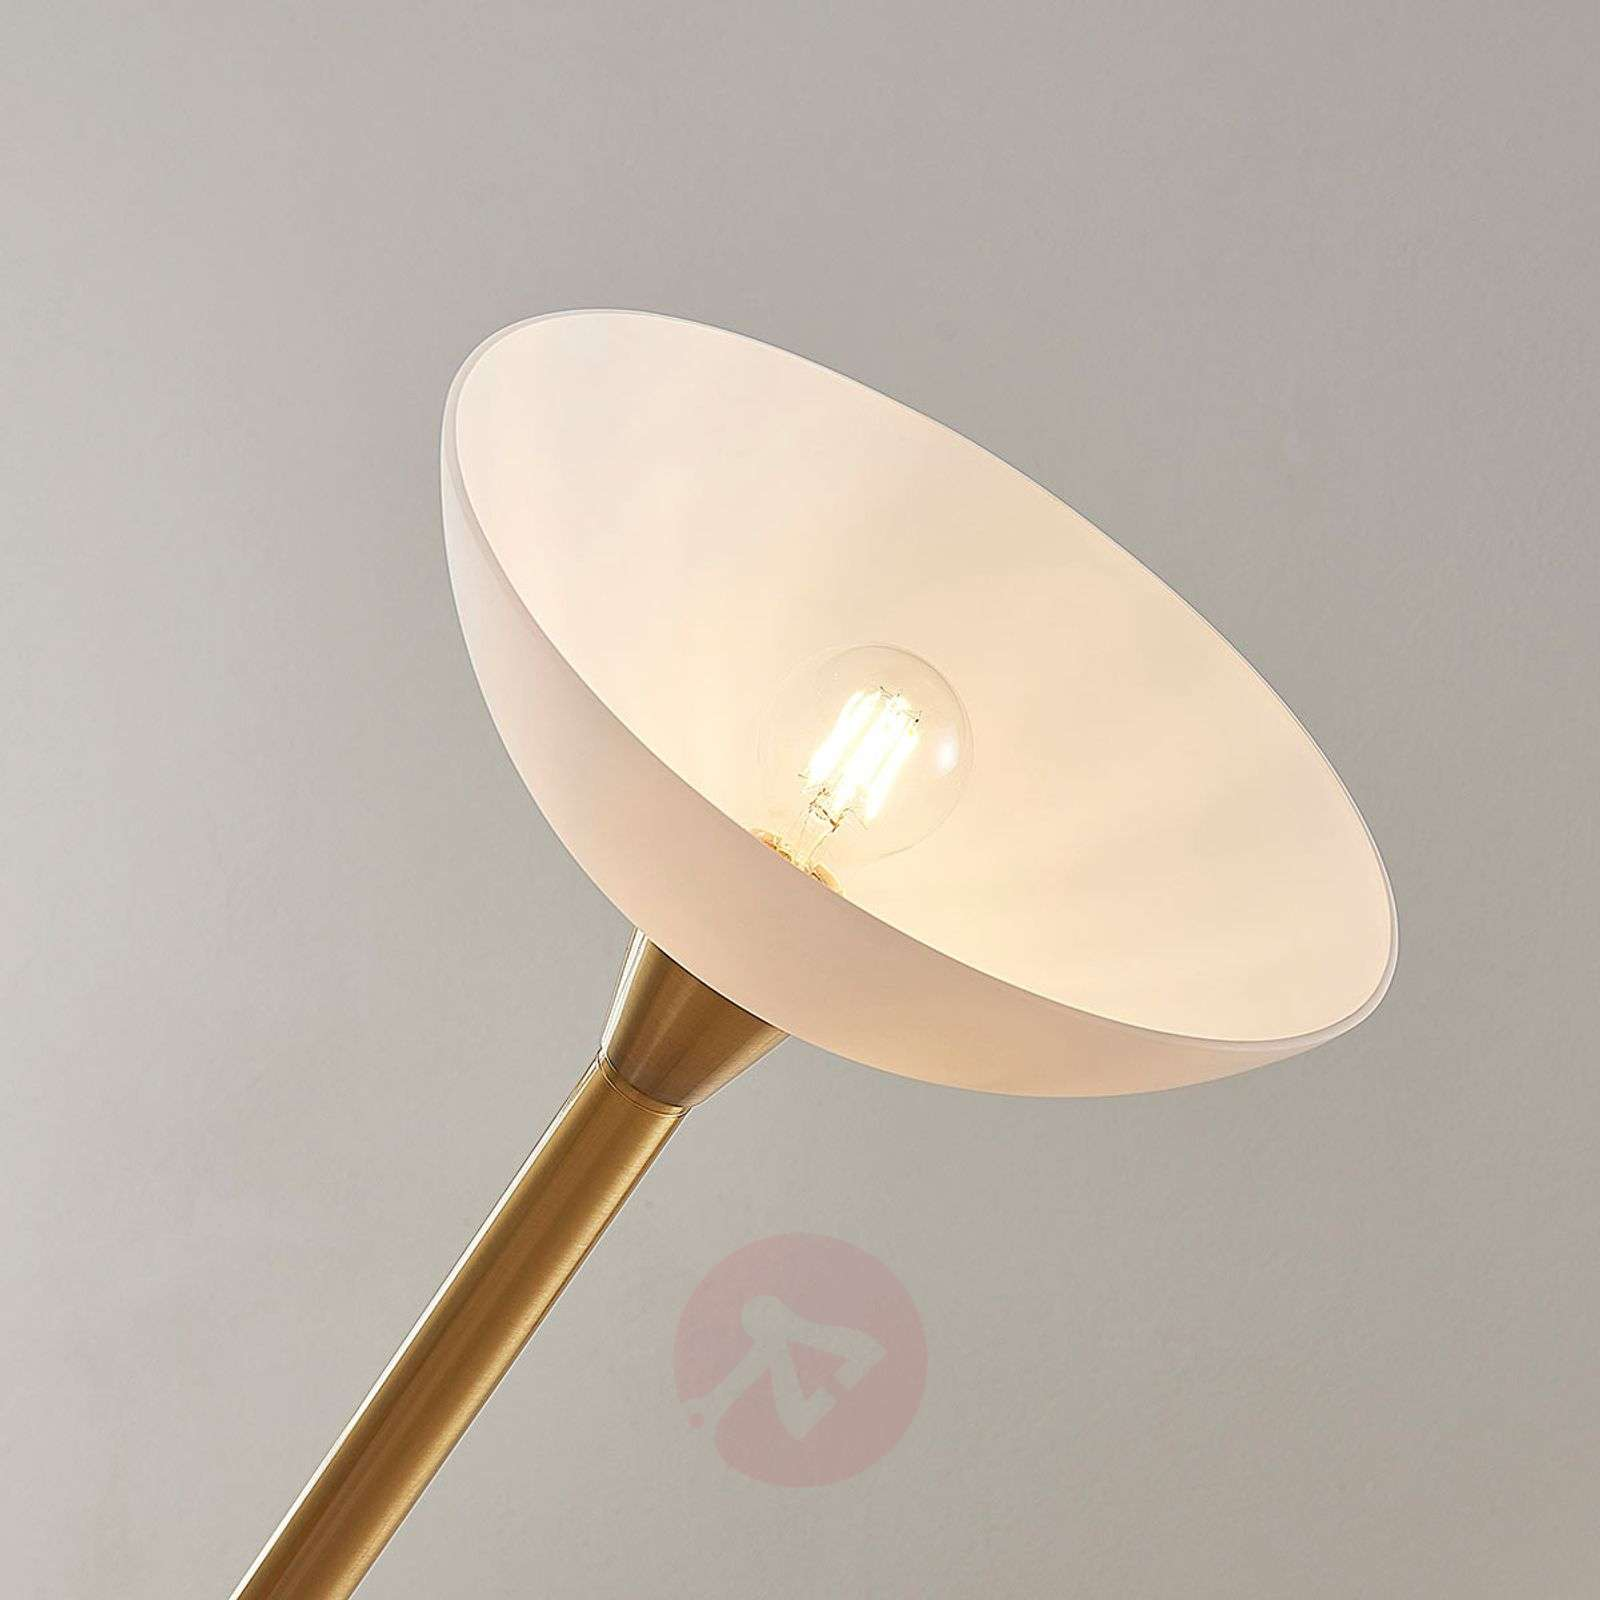 Brass-coloured LED uplighter Ignacia-9621679-02